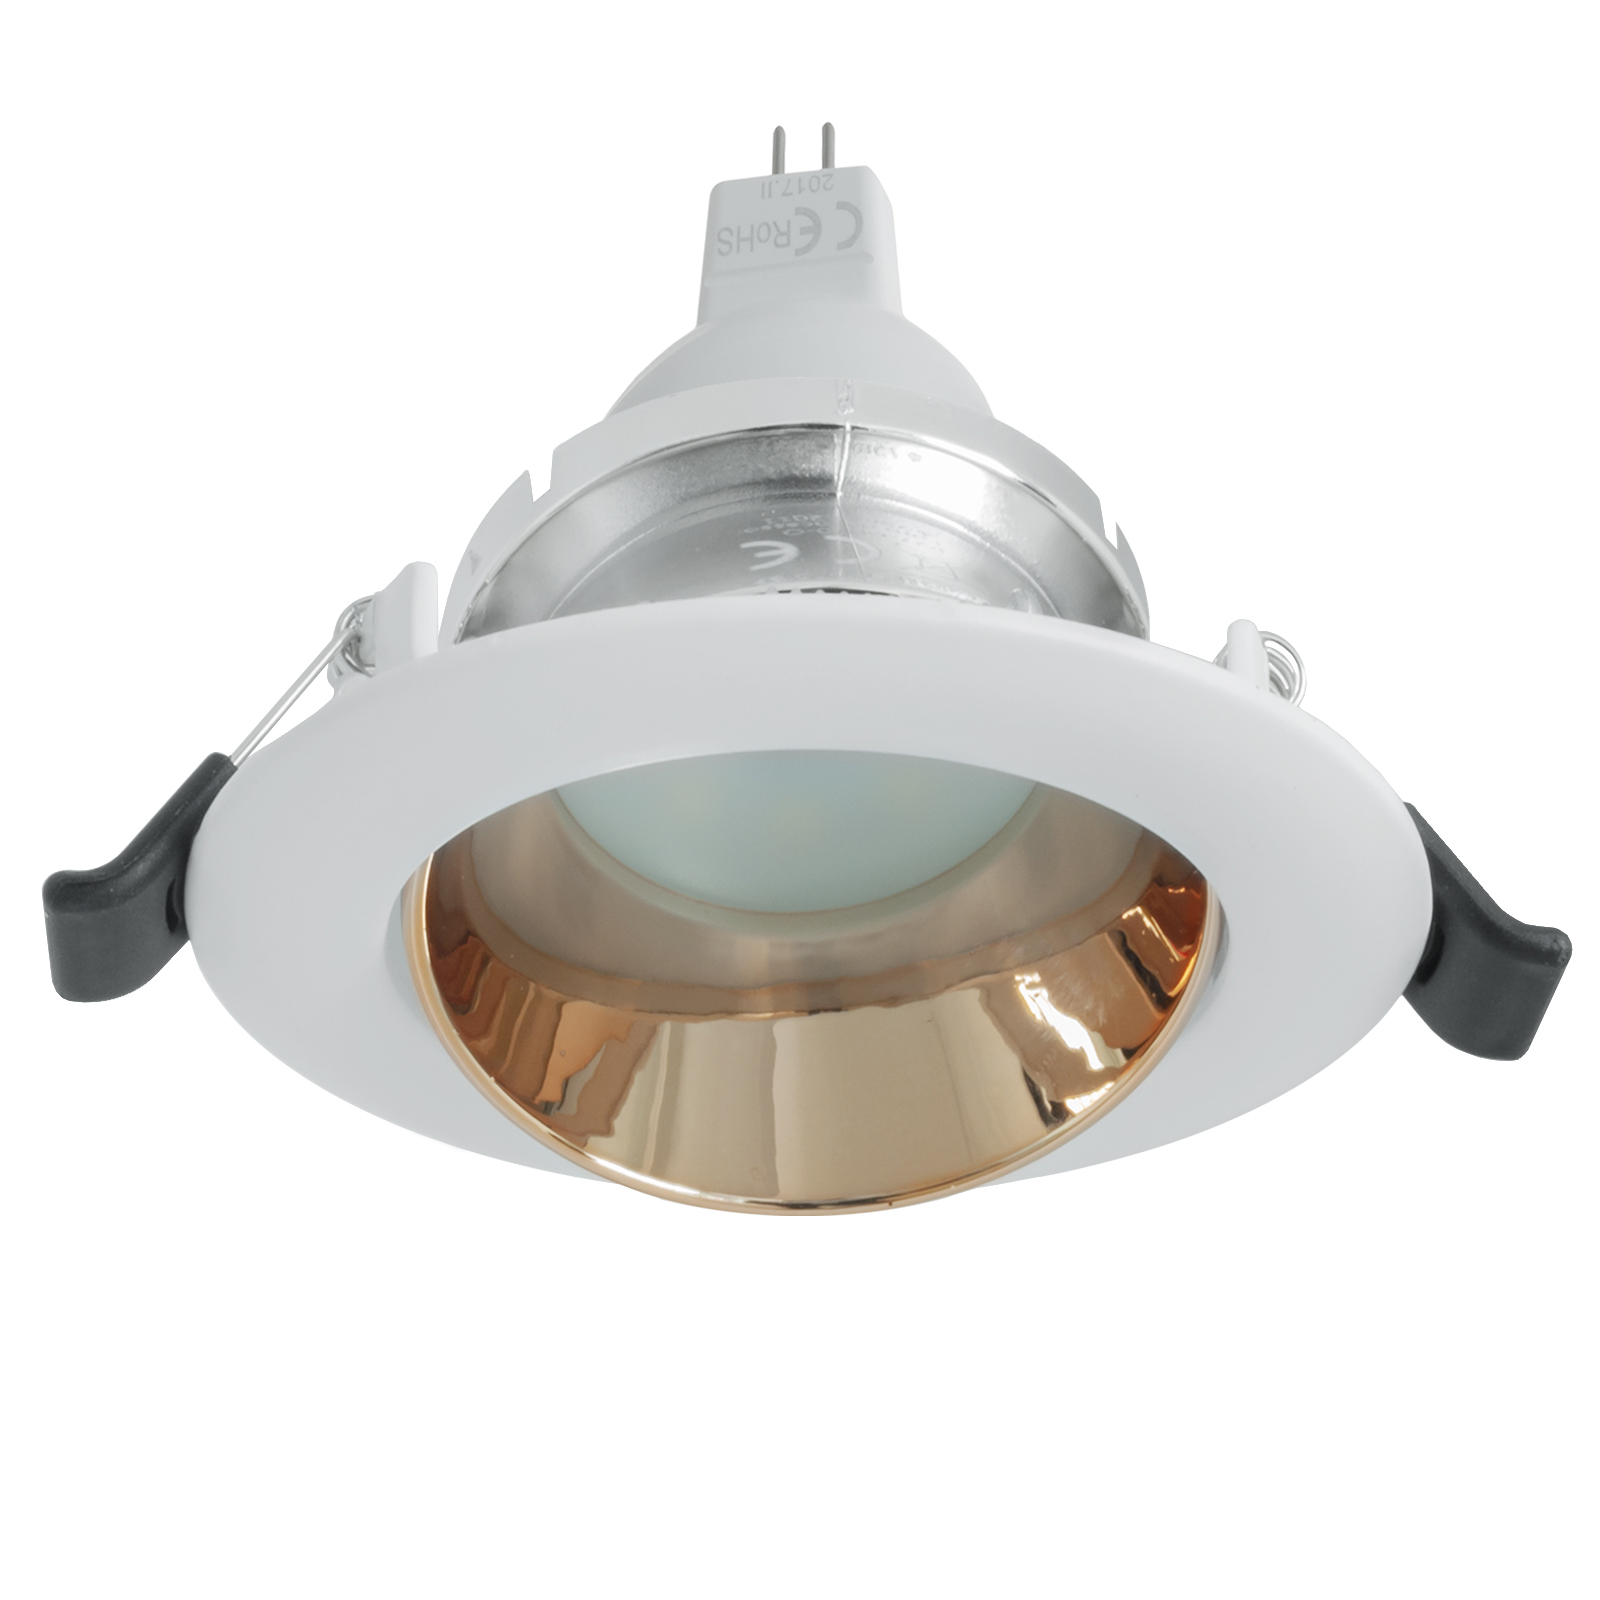 Round LED spotlight 7W recessed ceiling light 12V GU5.3 low voltage boat 75mm